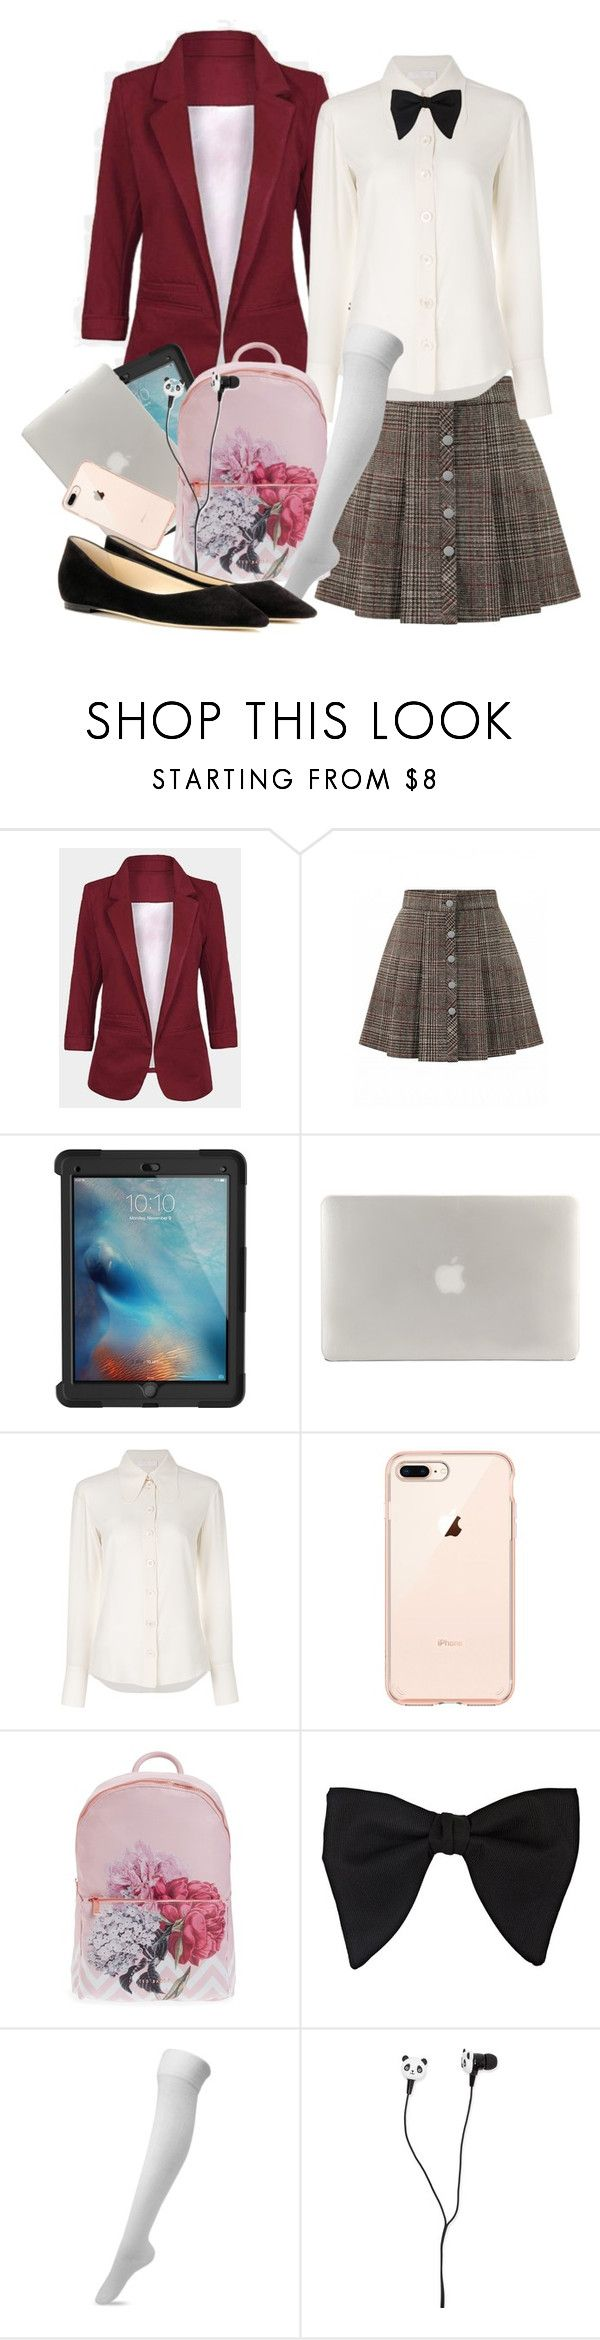 """""""Untitled #545"""" by tearasakuramori ❤ liked on Polyvore featuring Griffin, Tucano, Chloé, Ted Baker, Gucci, Forever 21 and Jimmy Choo"""